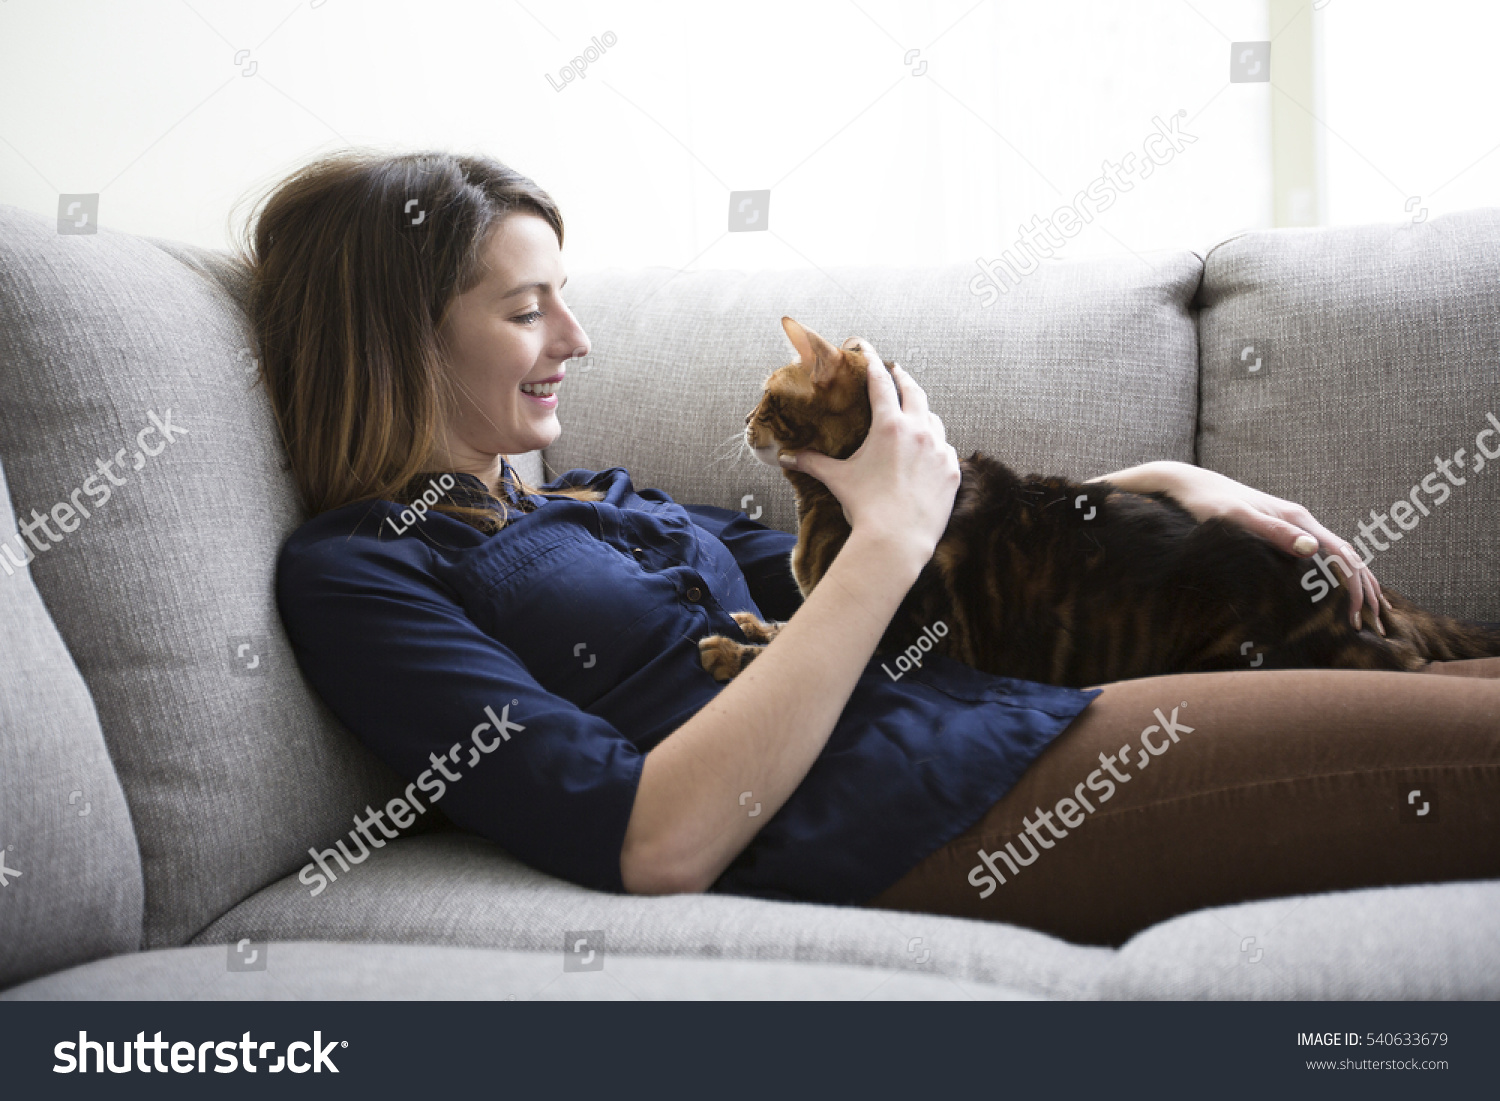 Cat Living Room On Couch Stock Photo 540633679